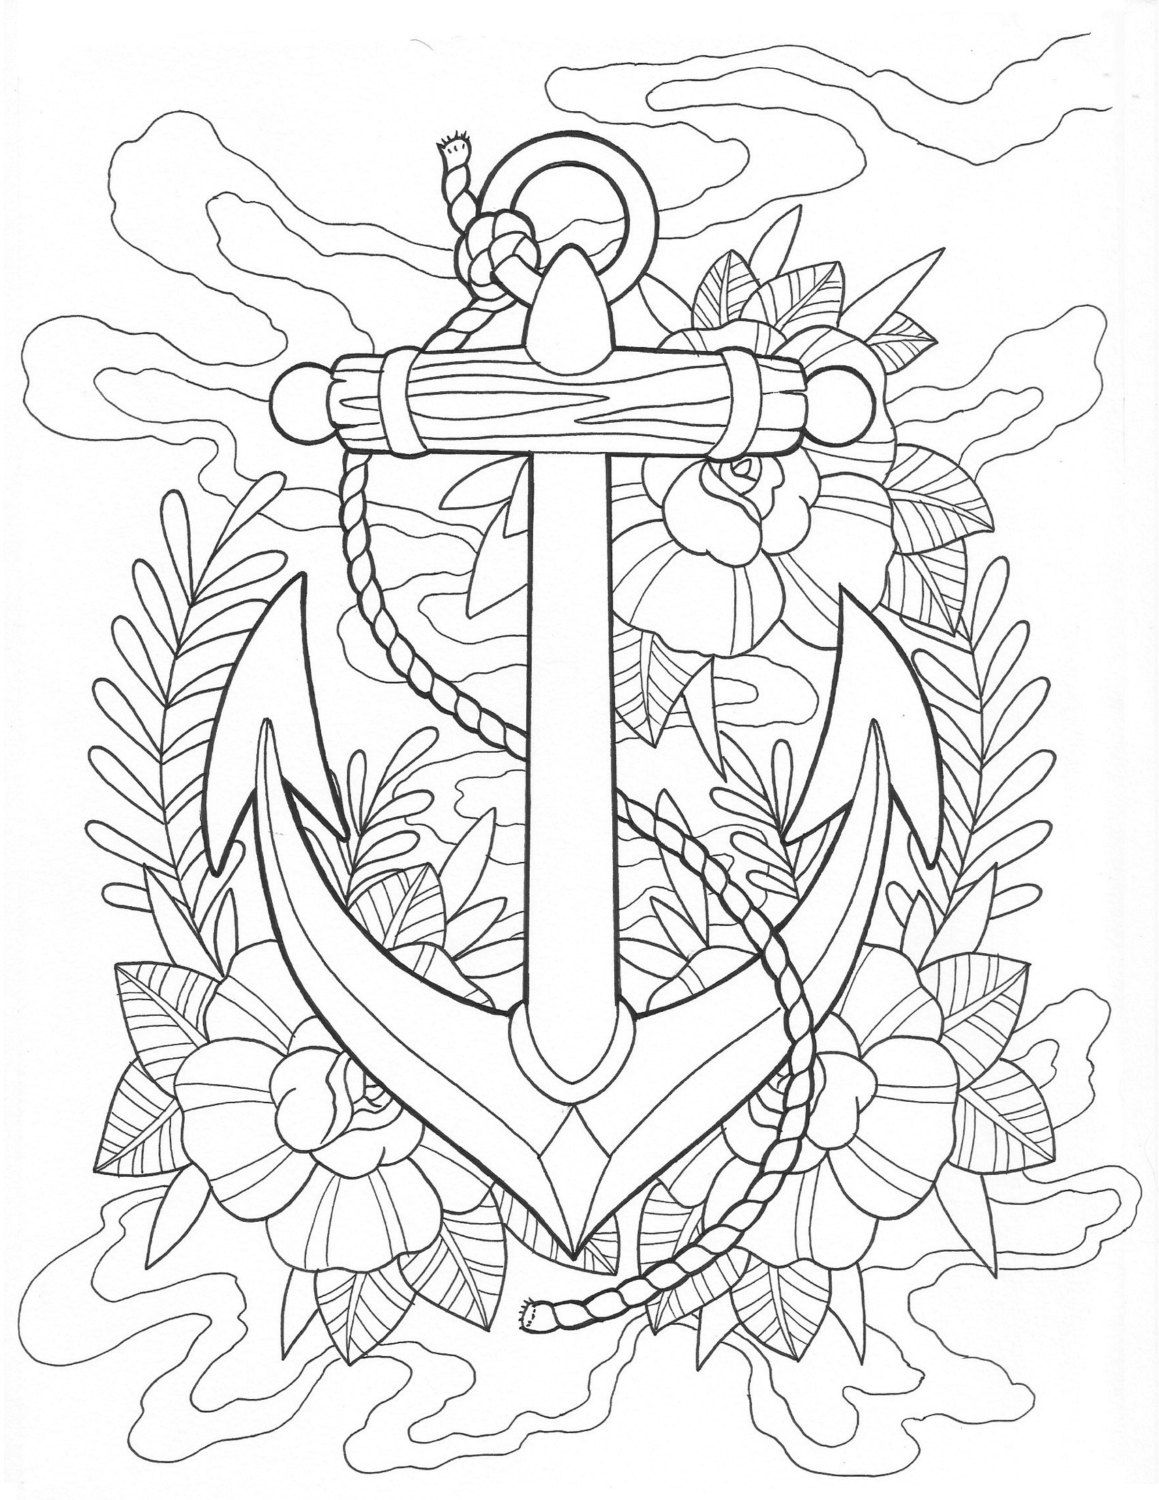 free tattoo coloring pages tattoo coloring pages for adults best coloring pages for free pages tattoo coloring